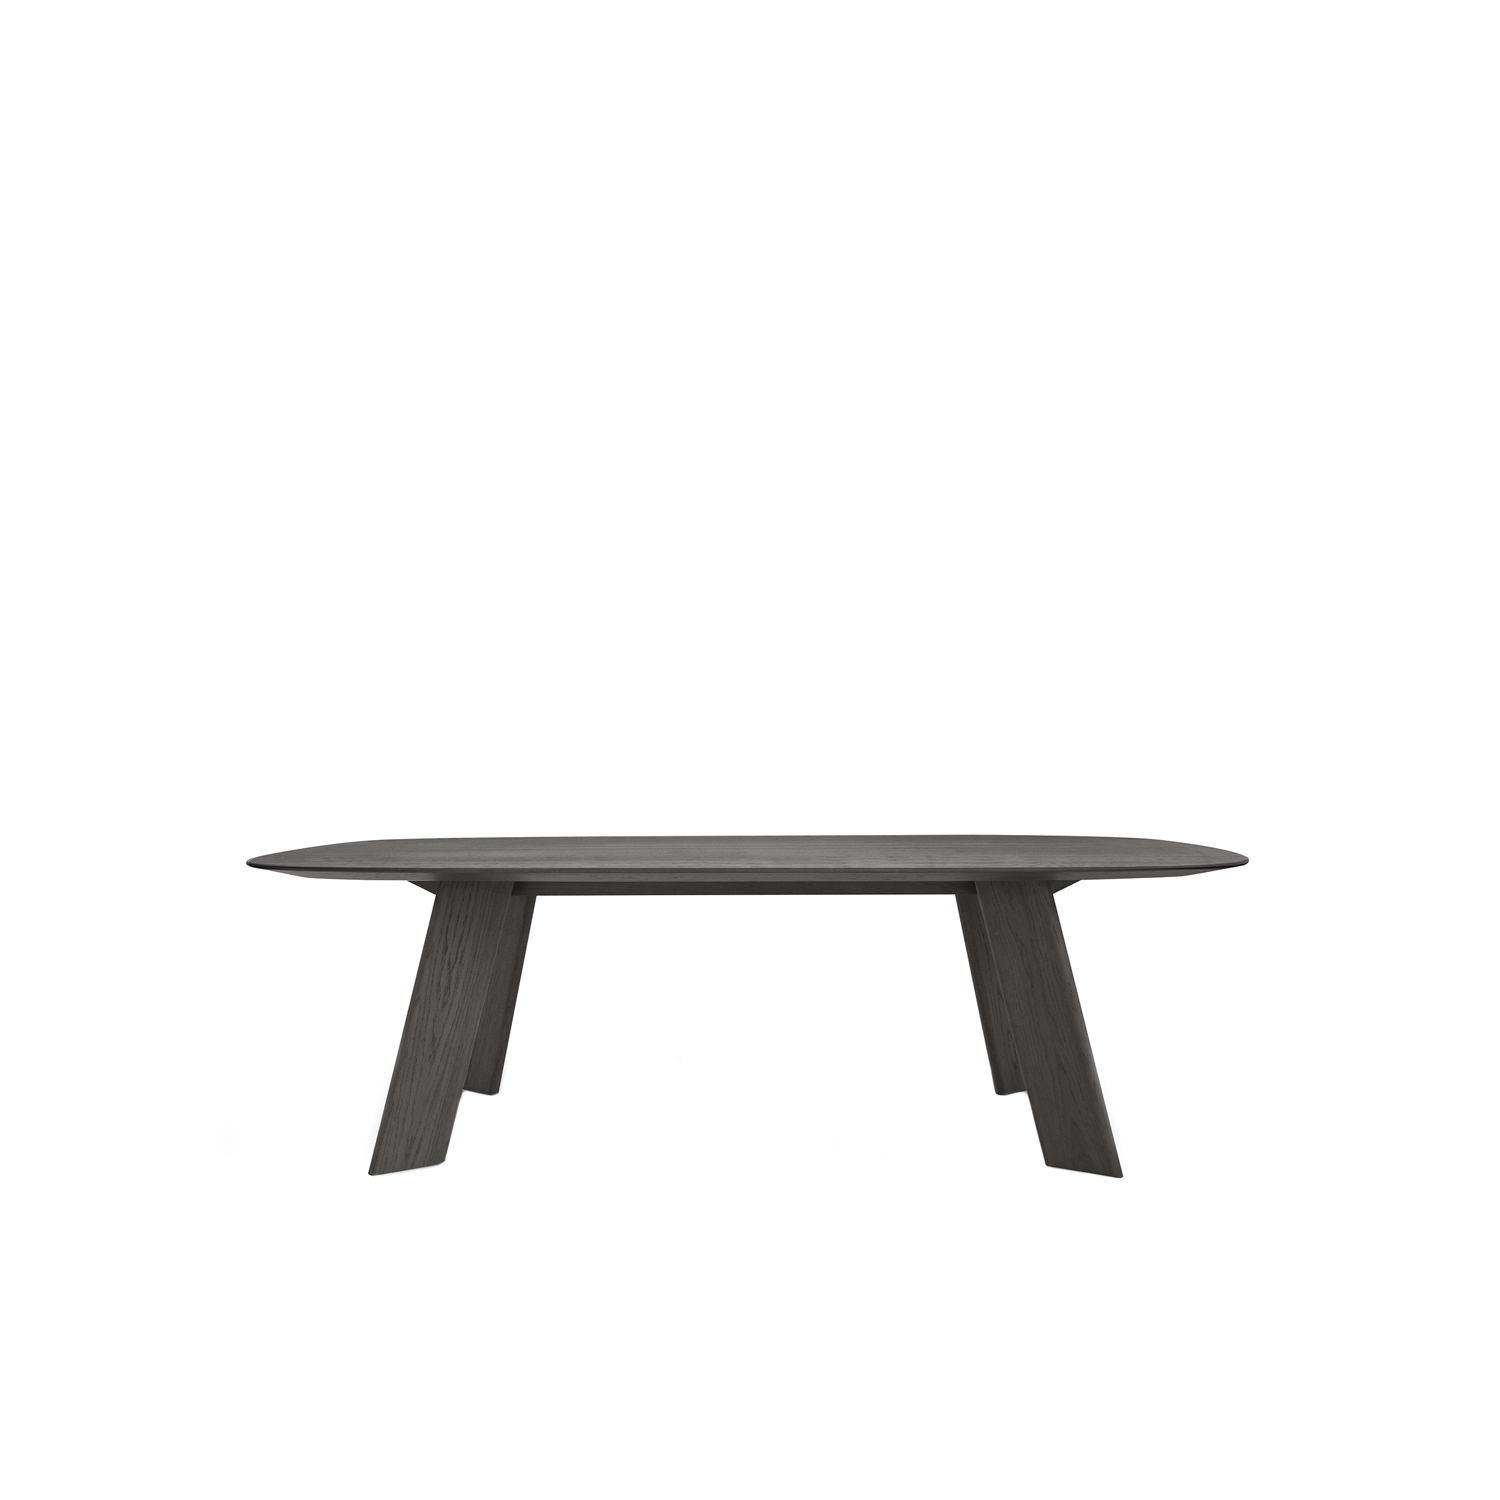 Alhambra 001 C Dining Table - Table in various sizes with shaped soap top, legs in unique section, lacquered or solid wood.   Matter of Stuff